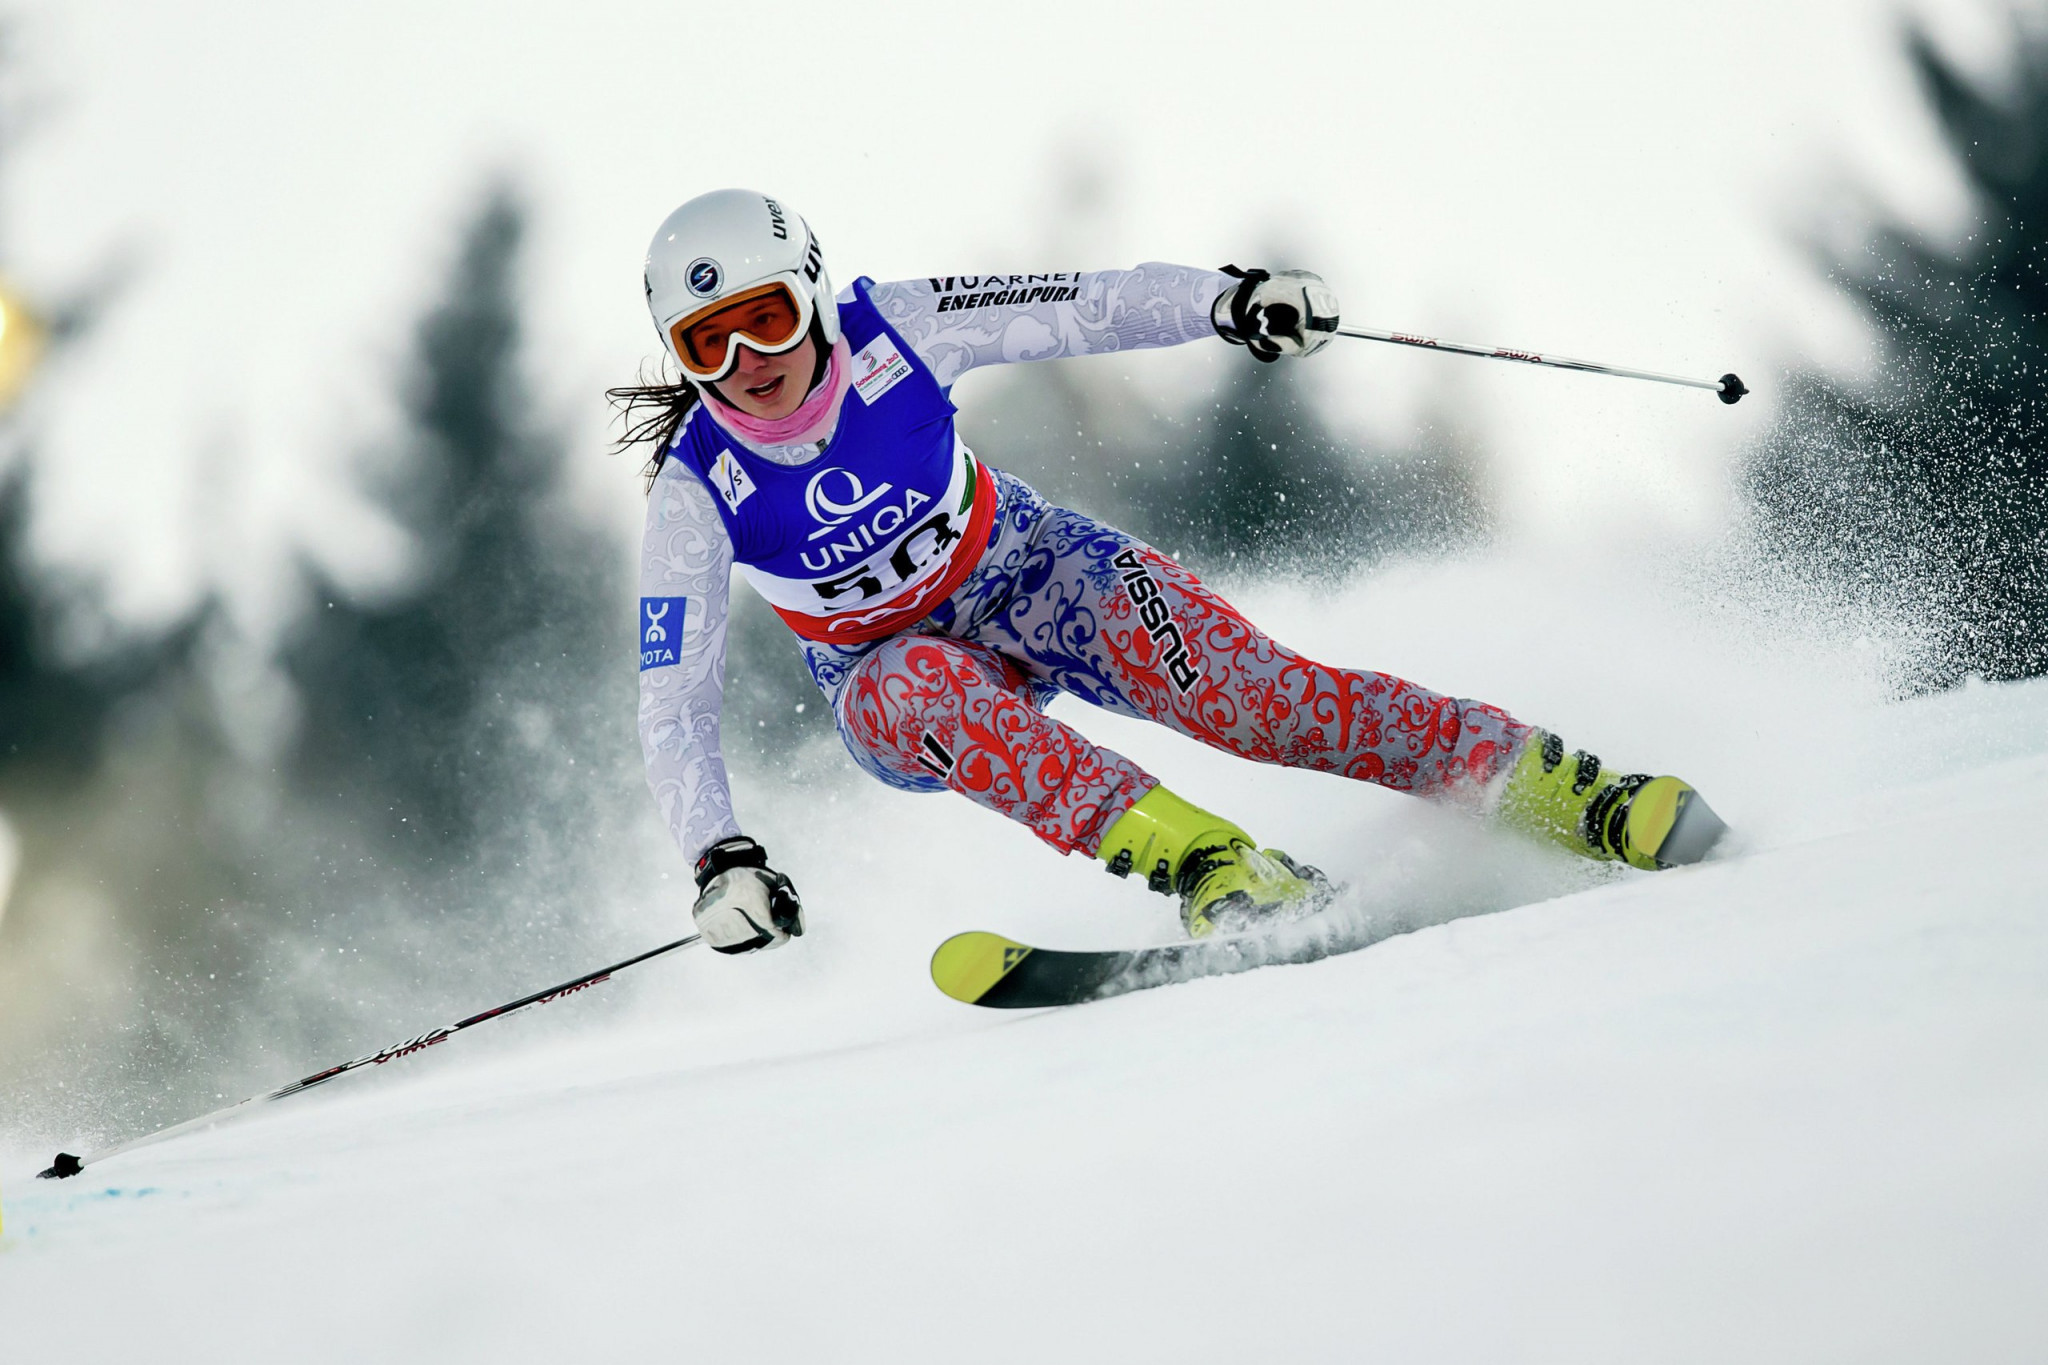 Alpine skiing test event set to be held in Krasnoyarsk in preparation for 2019 Winter Universiade